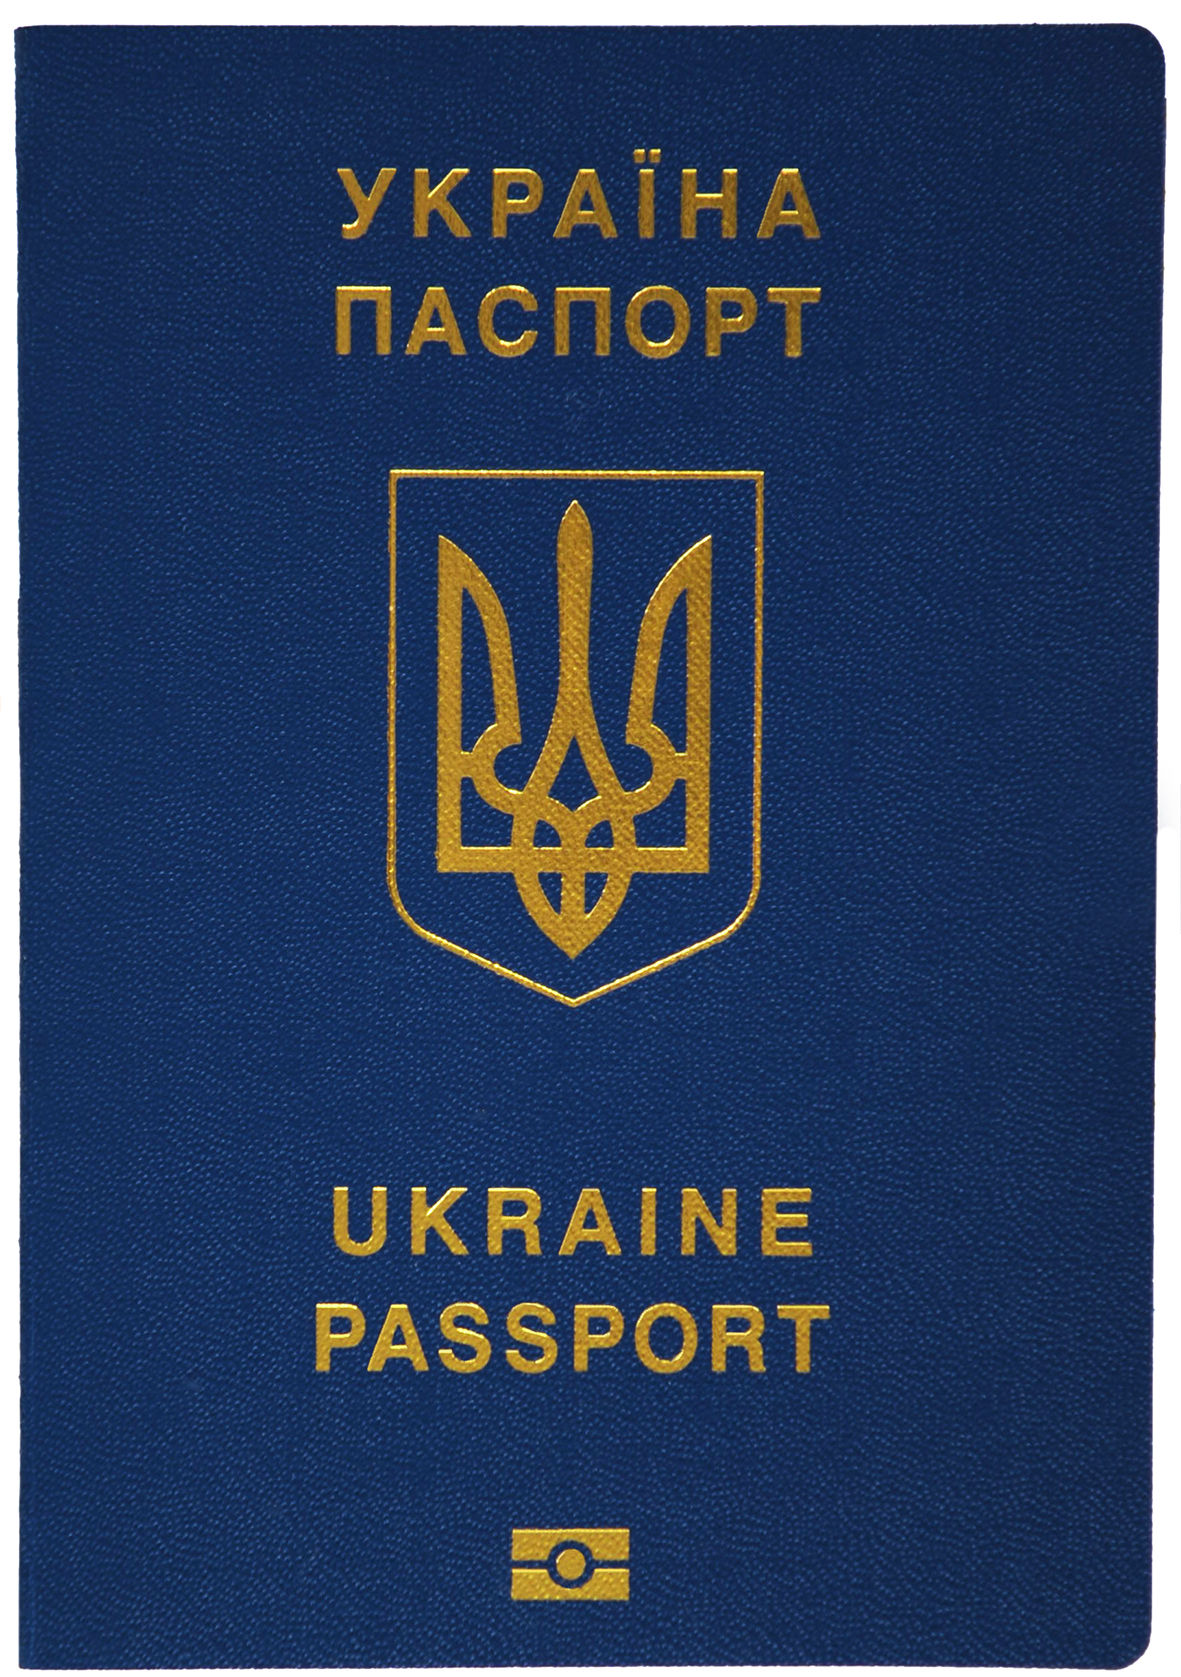 Ukrainian passport - Wikipedia